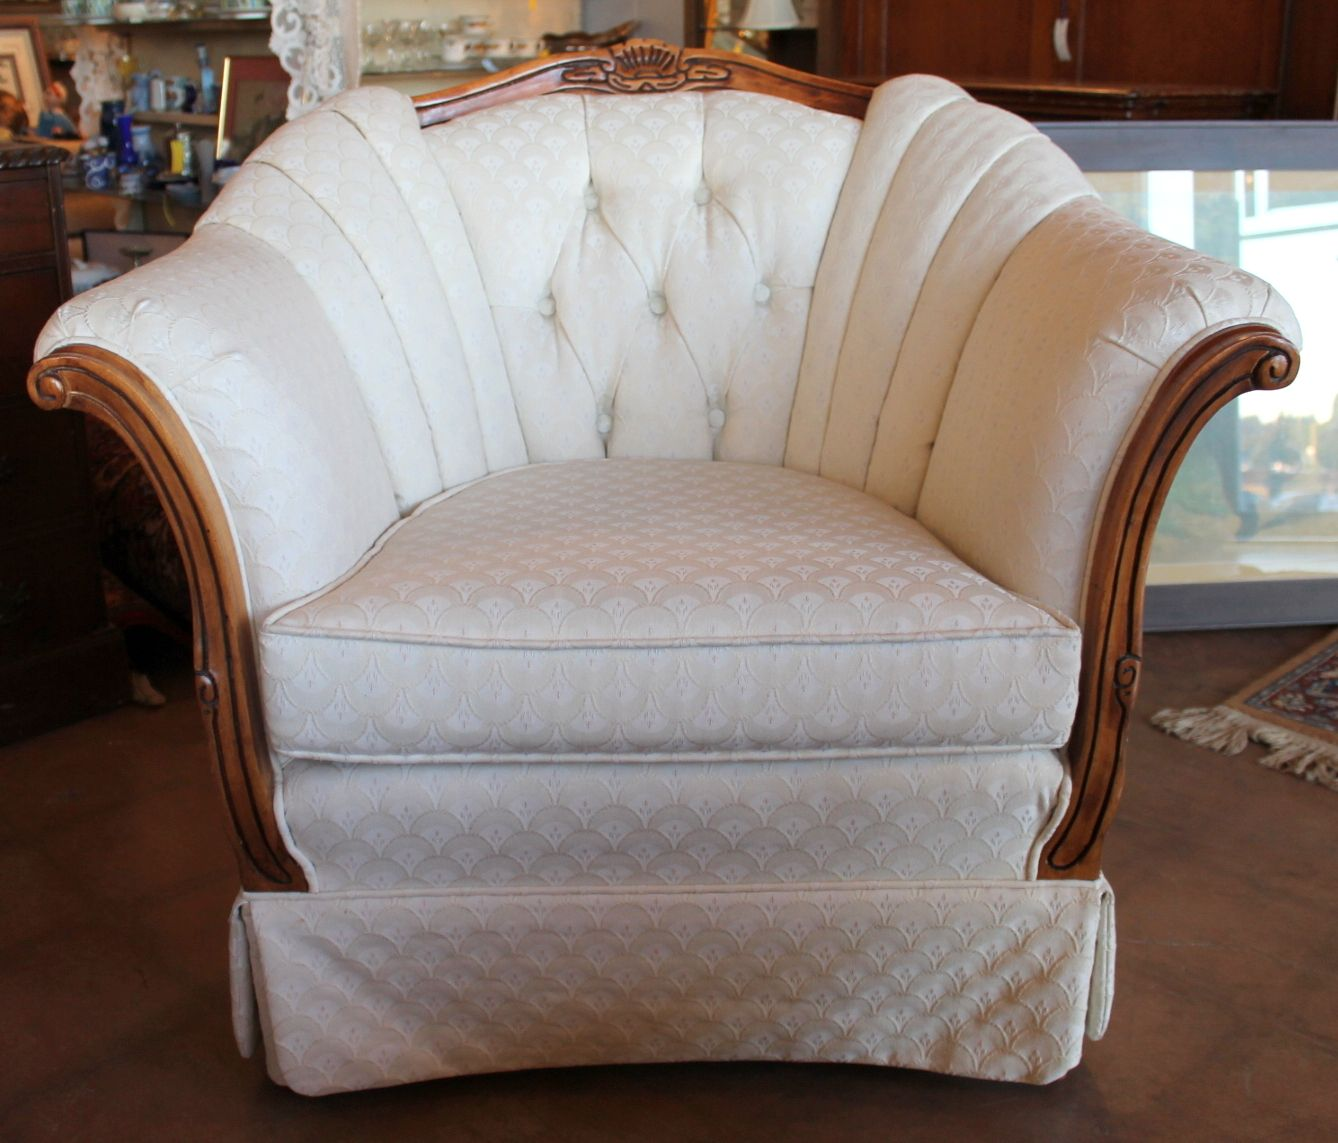 French Provincial Armchair From Kingsley Furniture.